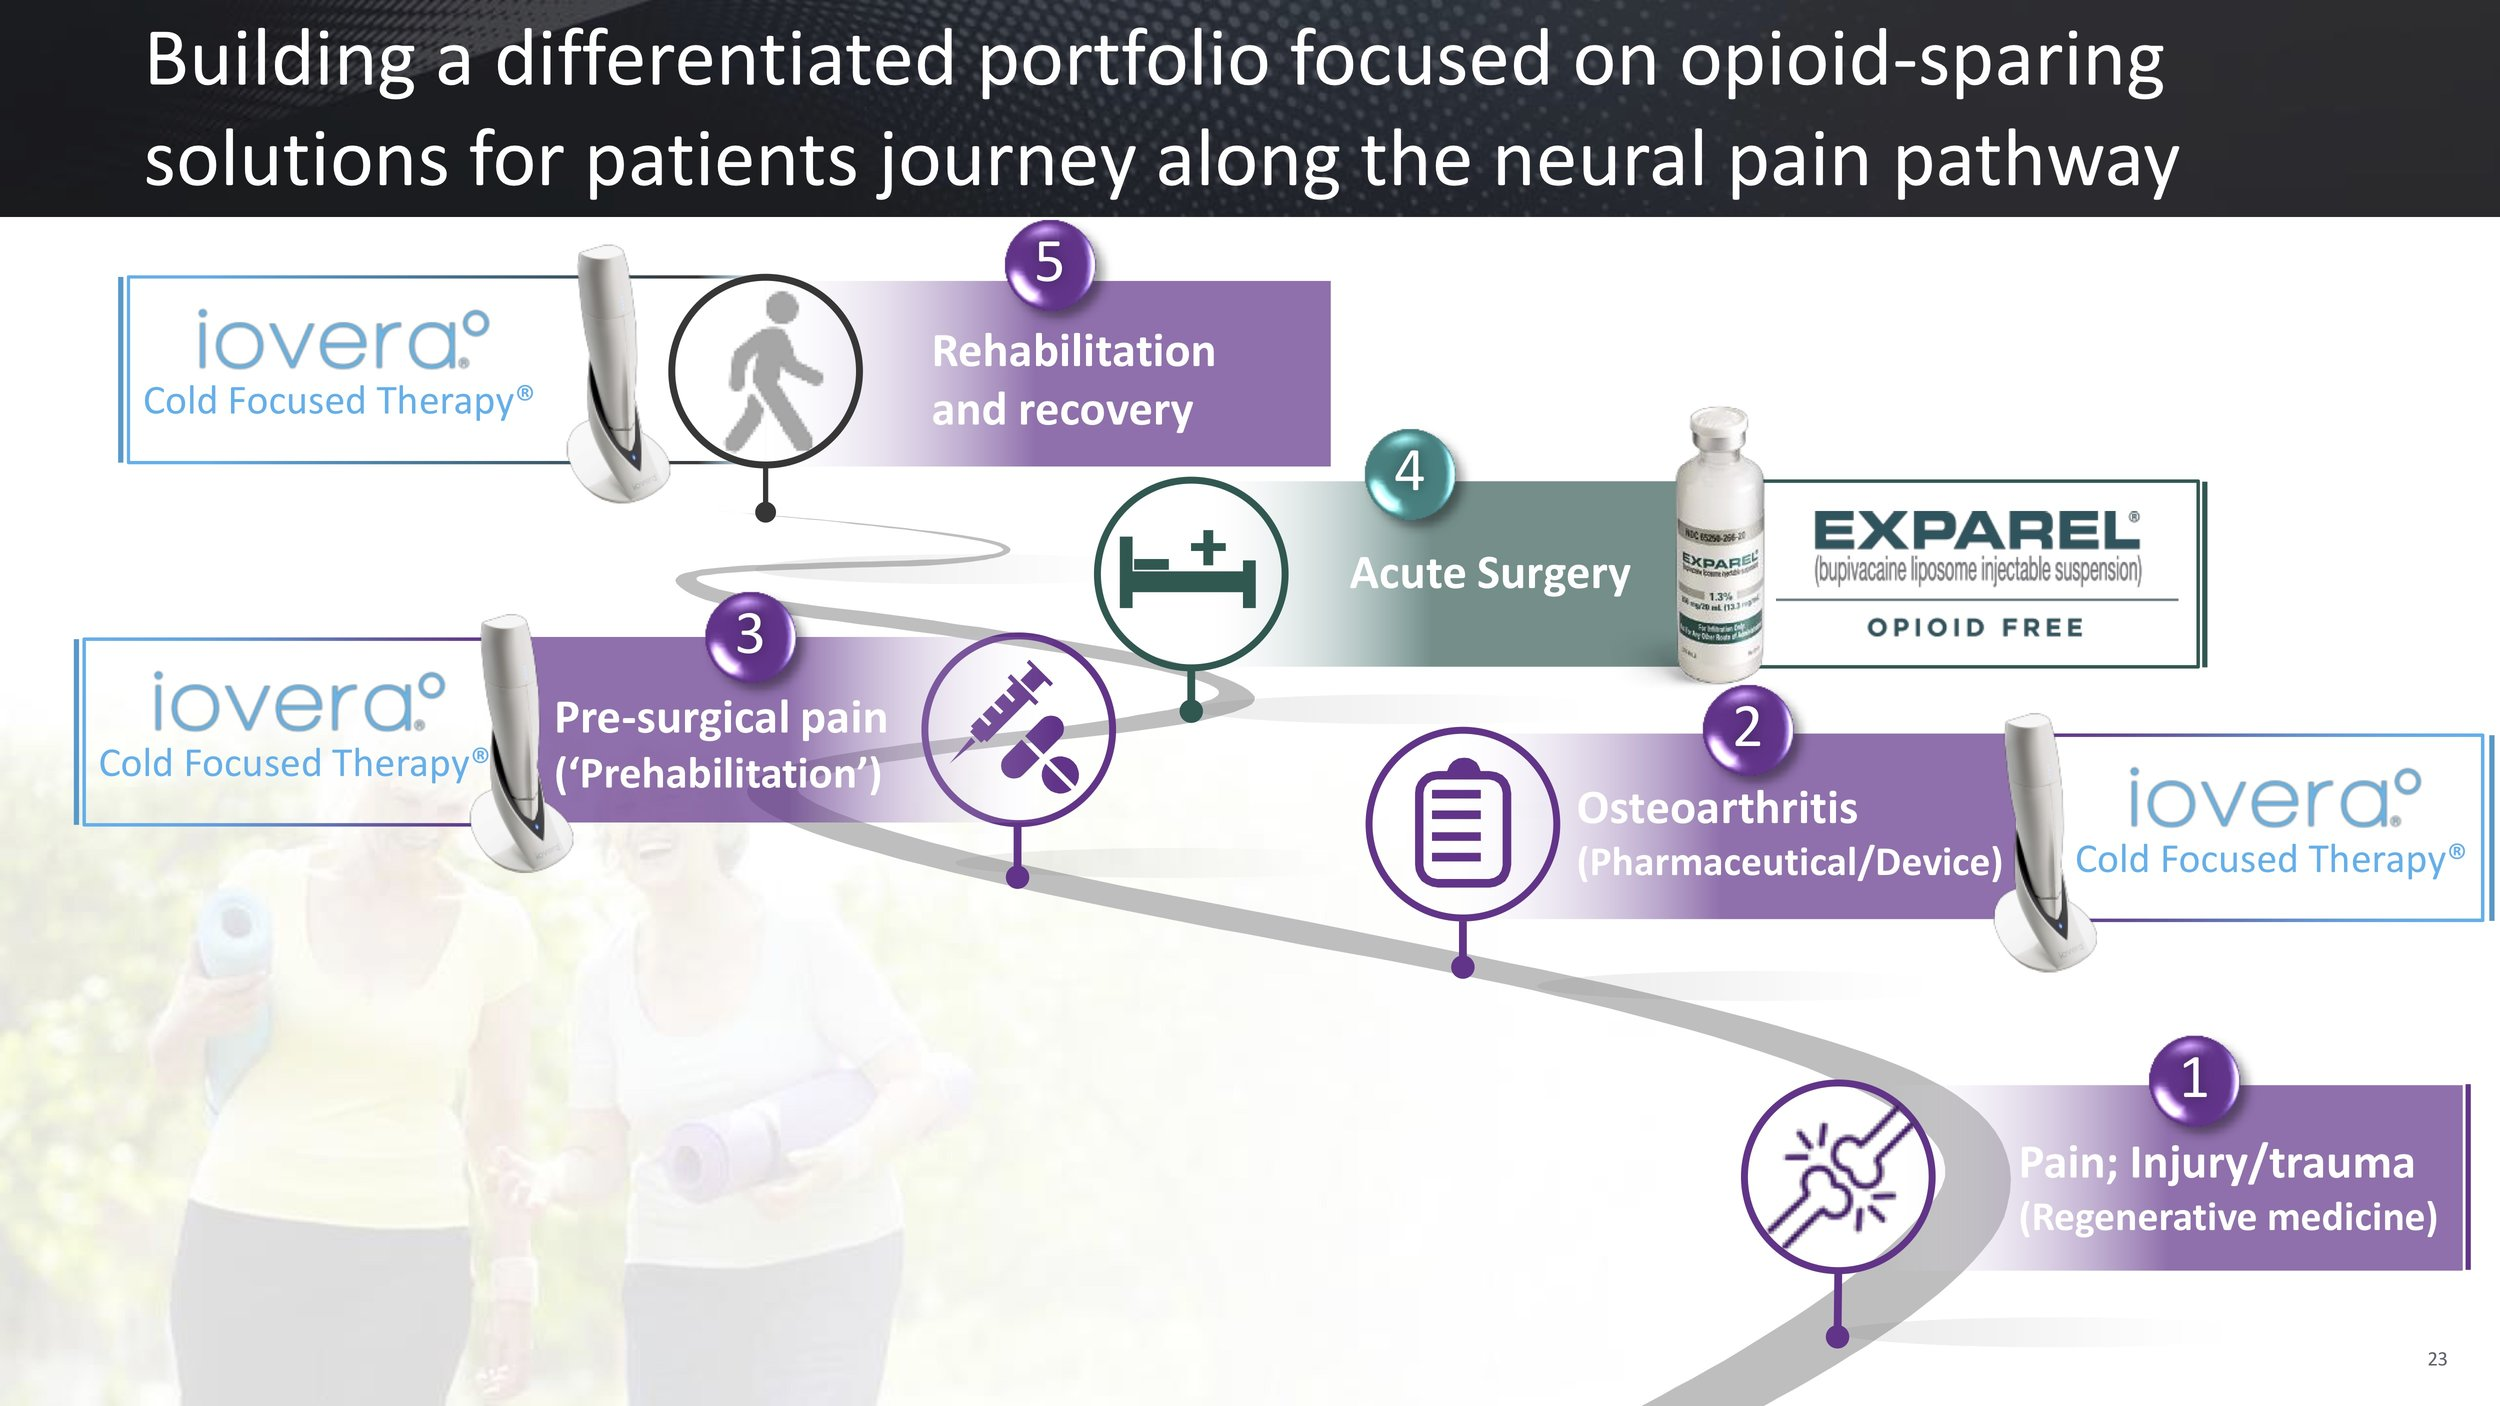 Source: Pacira Pharmaceuticals, March 2019 investor presentation